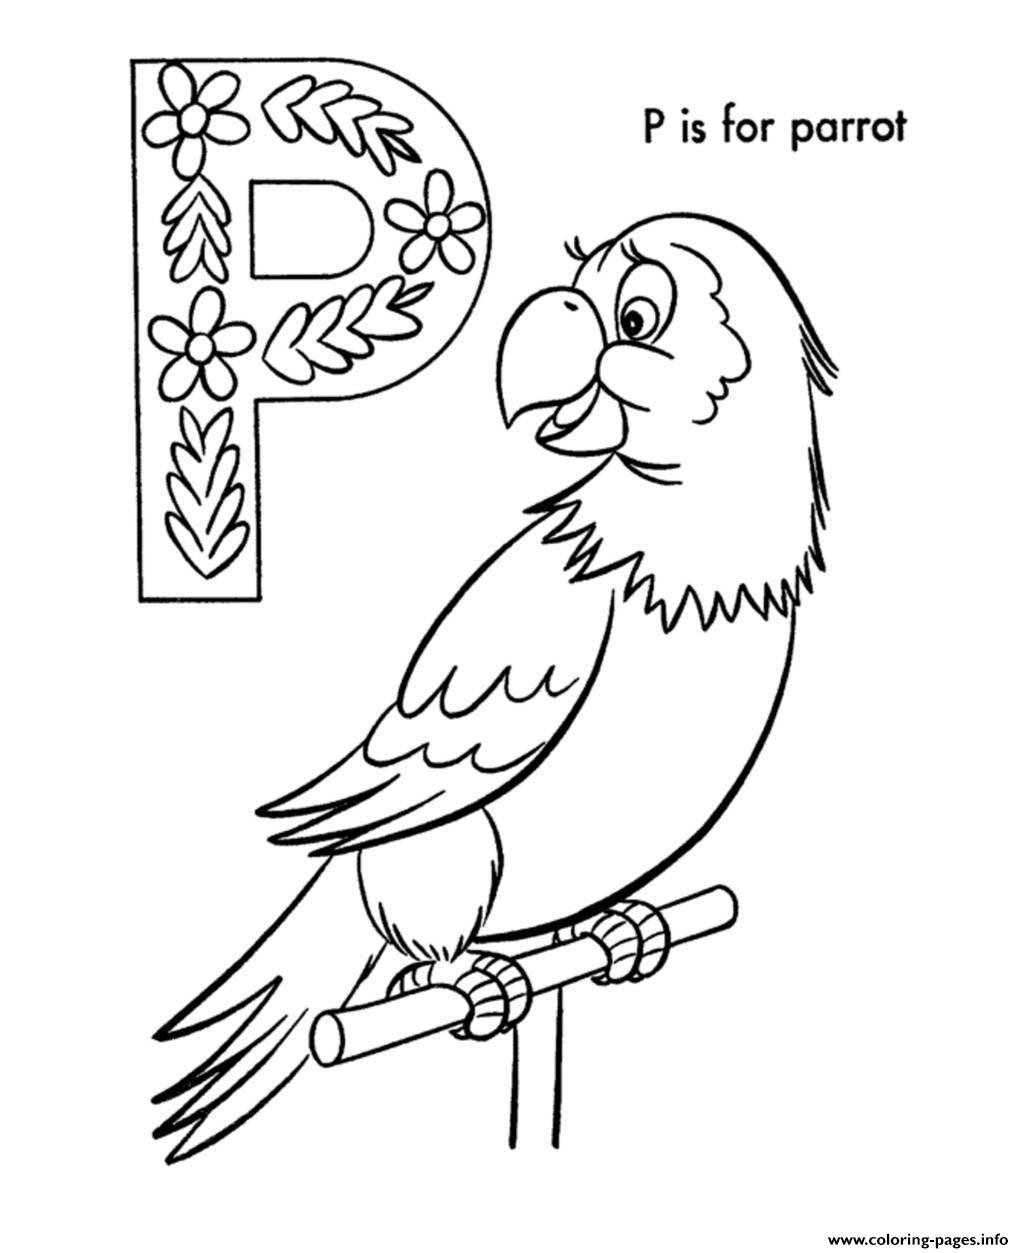 Alphabet Parrot Bird B870 Coloring Pages Printable